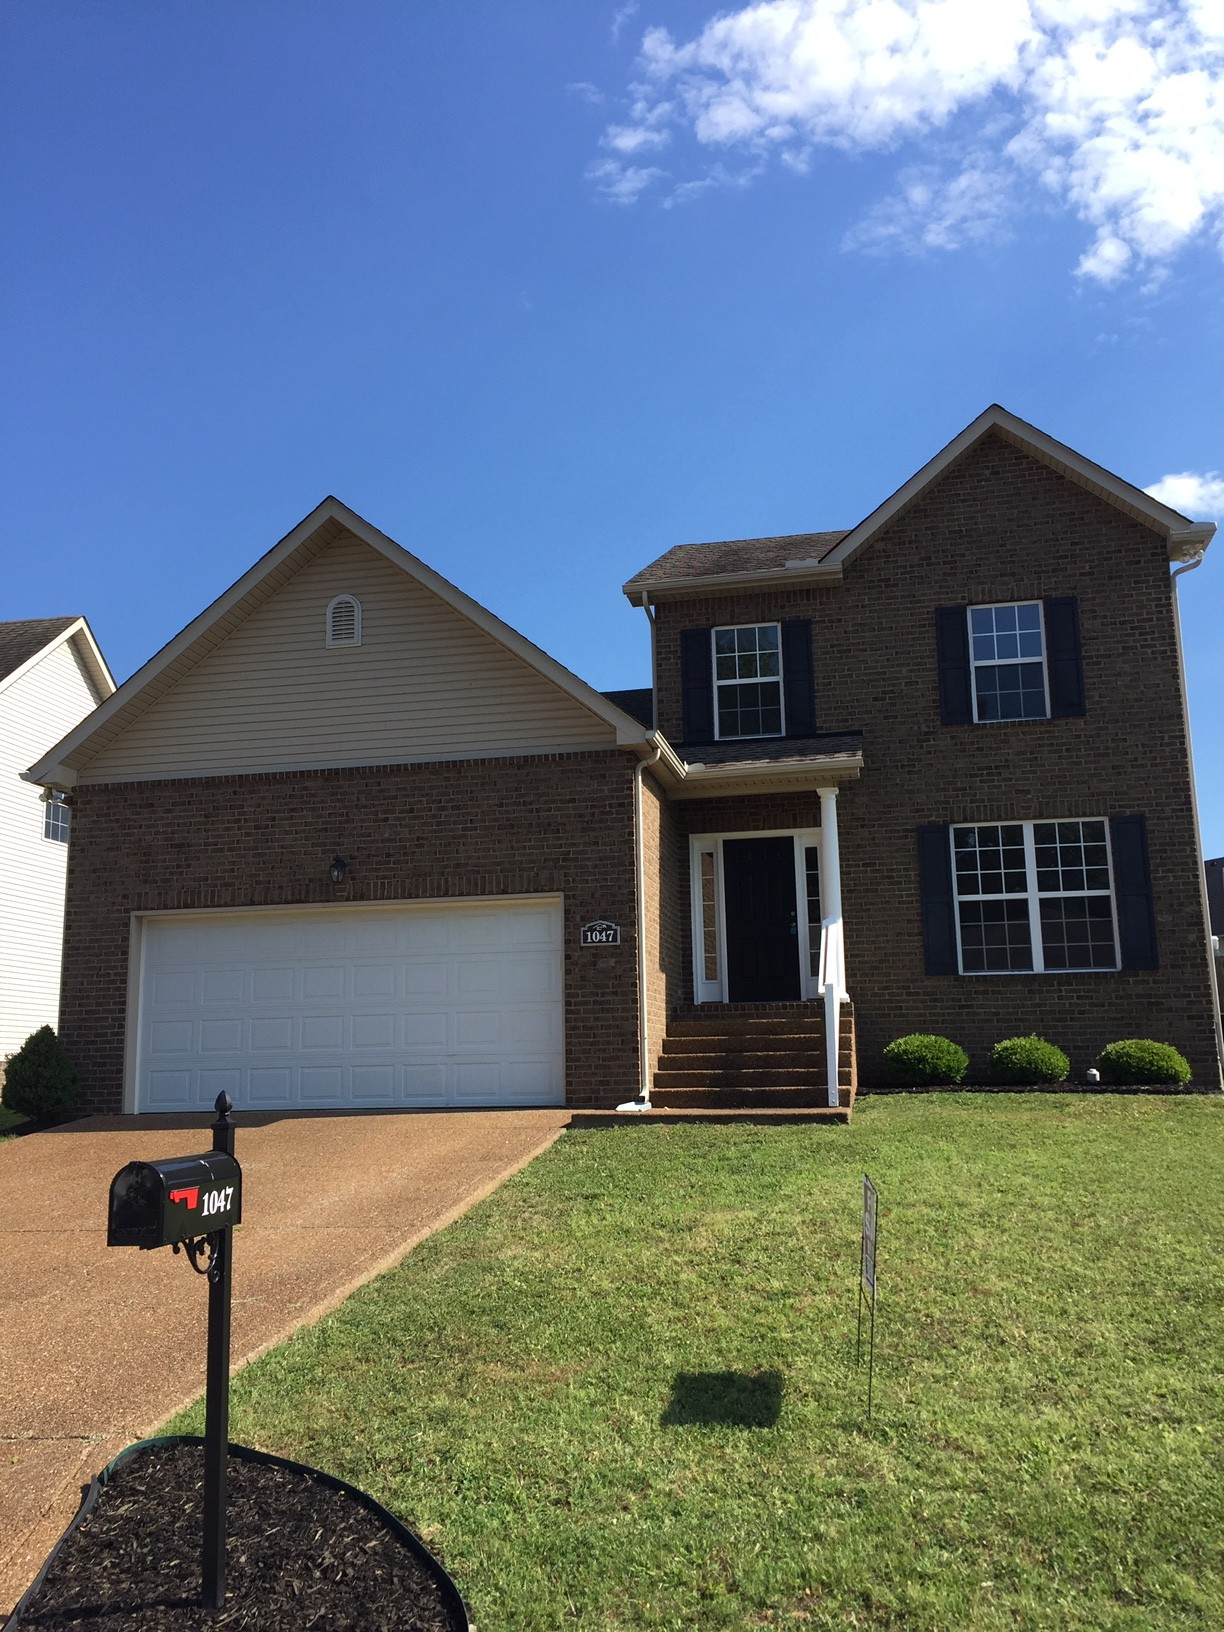 Great opportunity to buy a move-in ready , affordable Spring Hill home. Minutes off Saturn Pky, freshly painted neutral colors. New carpet upstairs. HVAC 6 yrs old, new H2O heater. Huge back yard for the kids, backing up to common area. Show and sell.